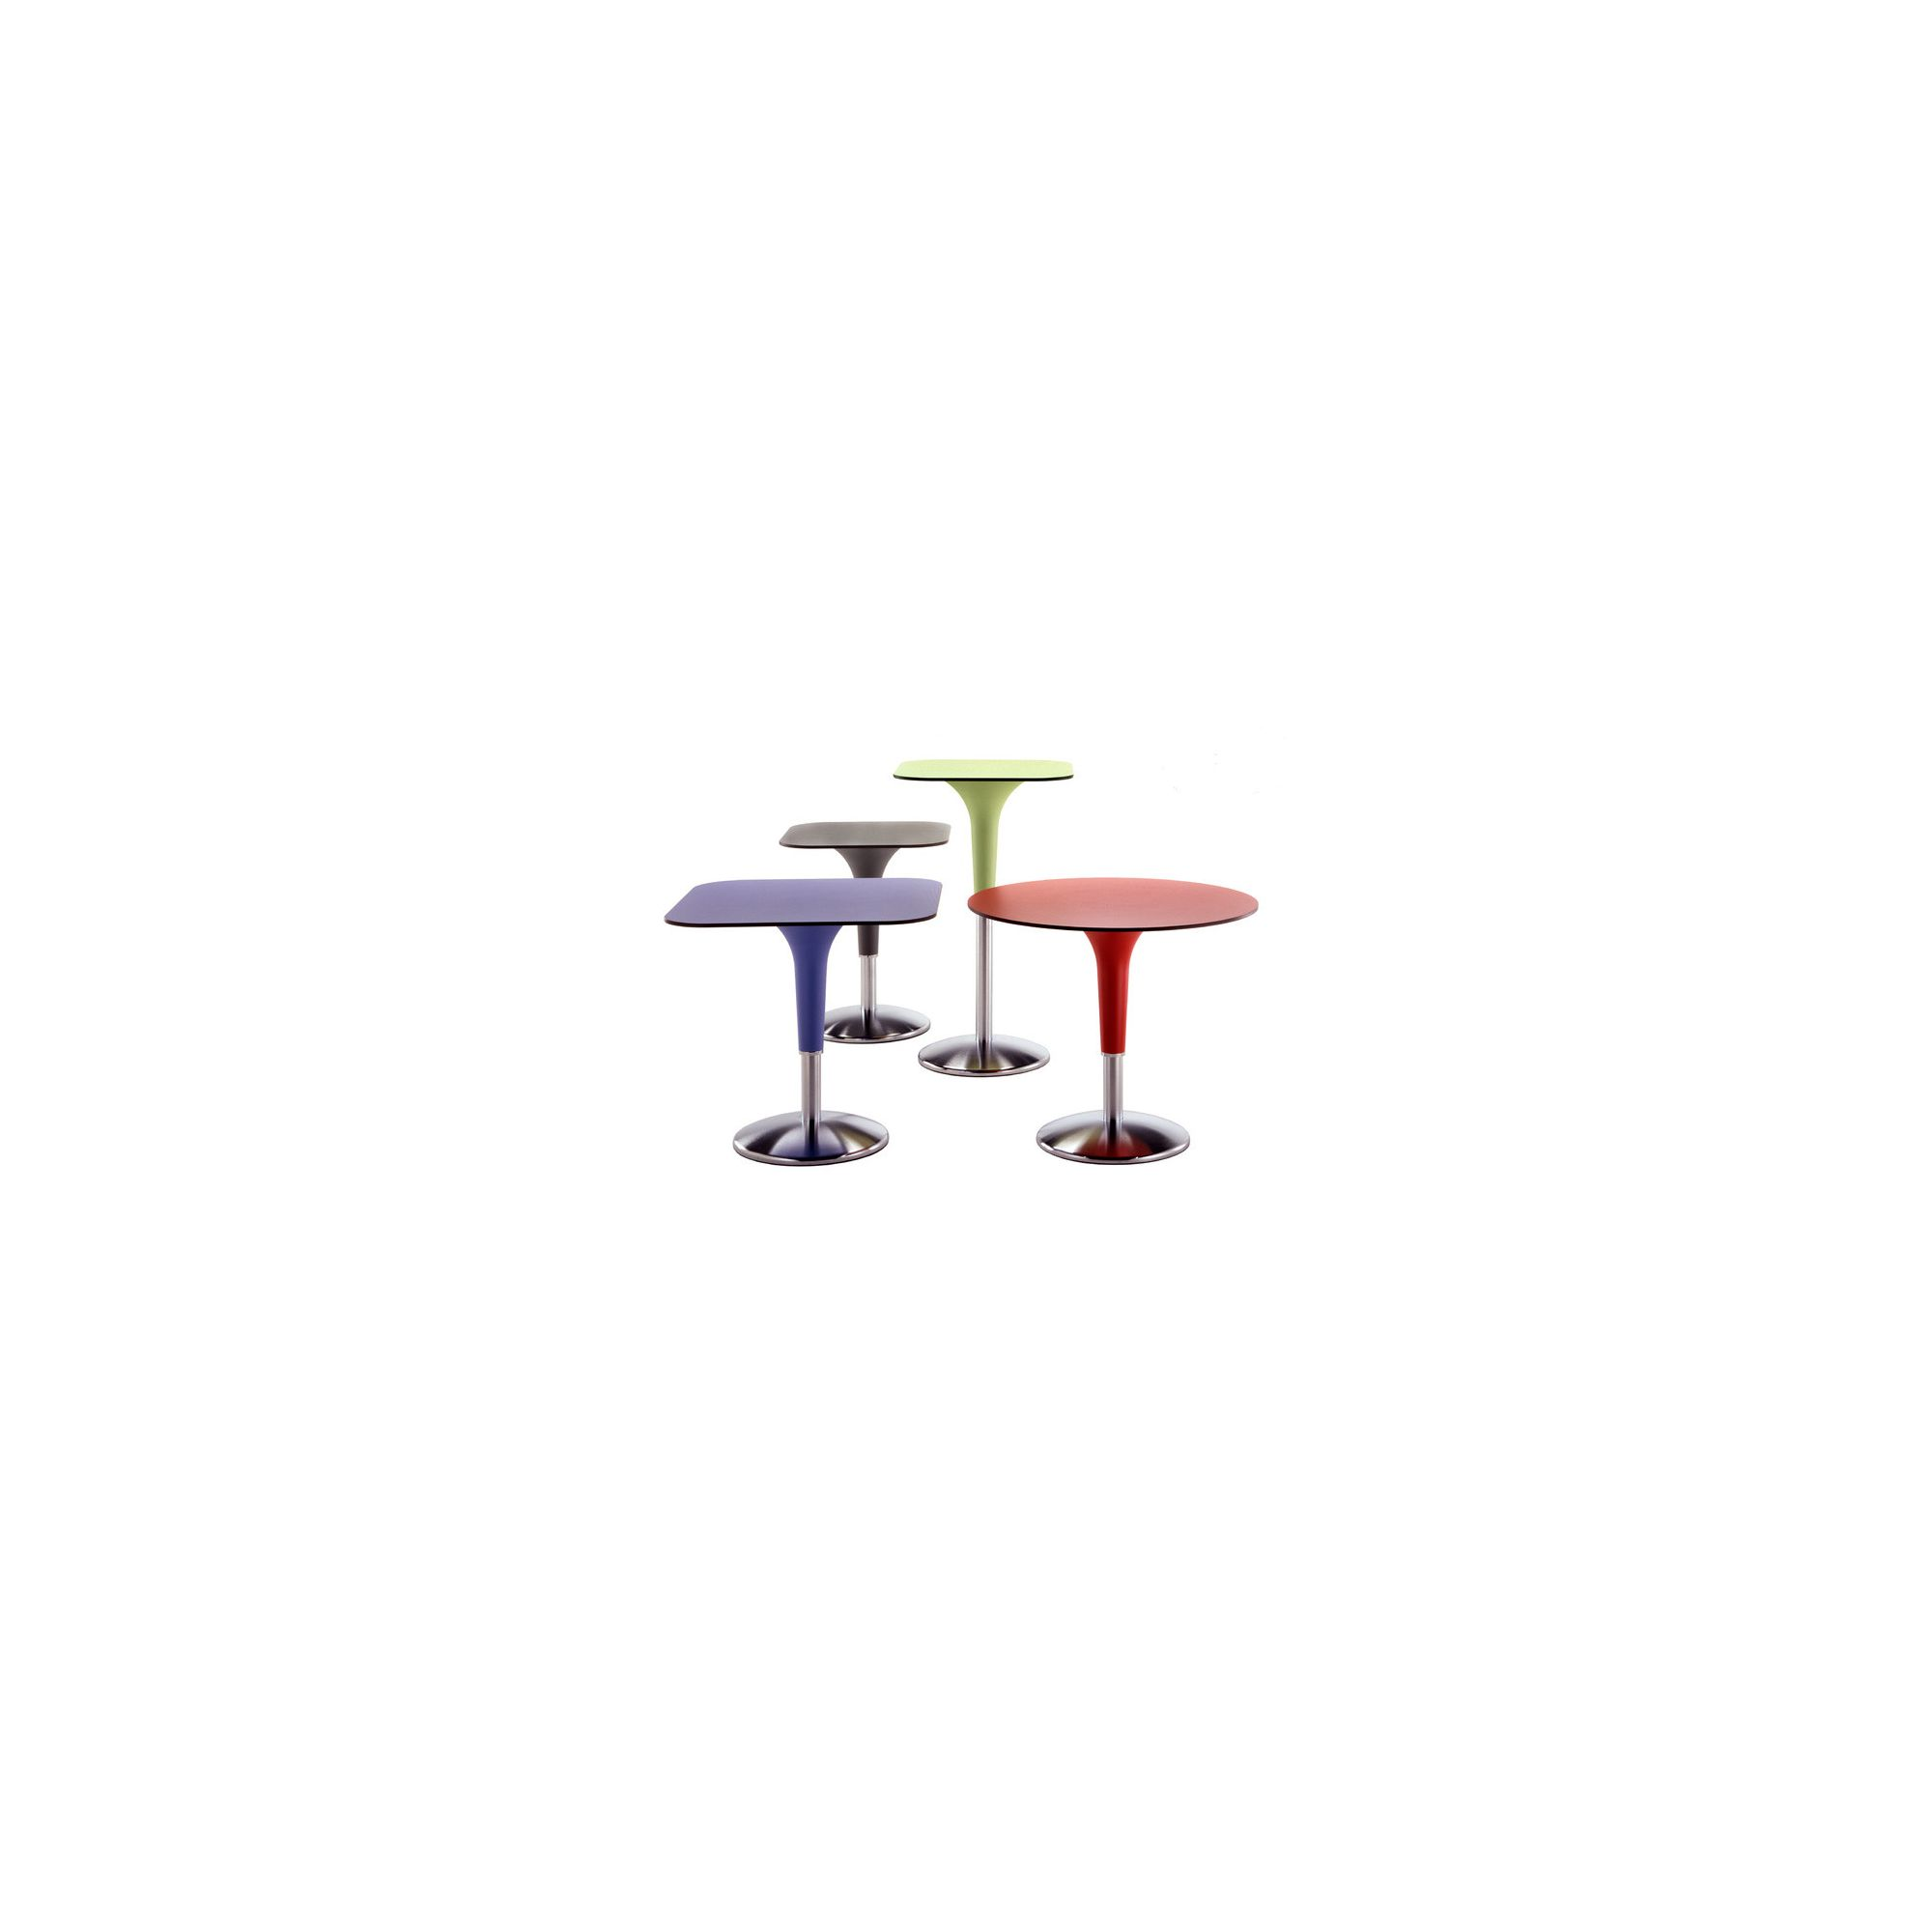 Rexite Zanziplano Square Table - 80cmx 80cm x 105cm - Grey at Tesco Direct